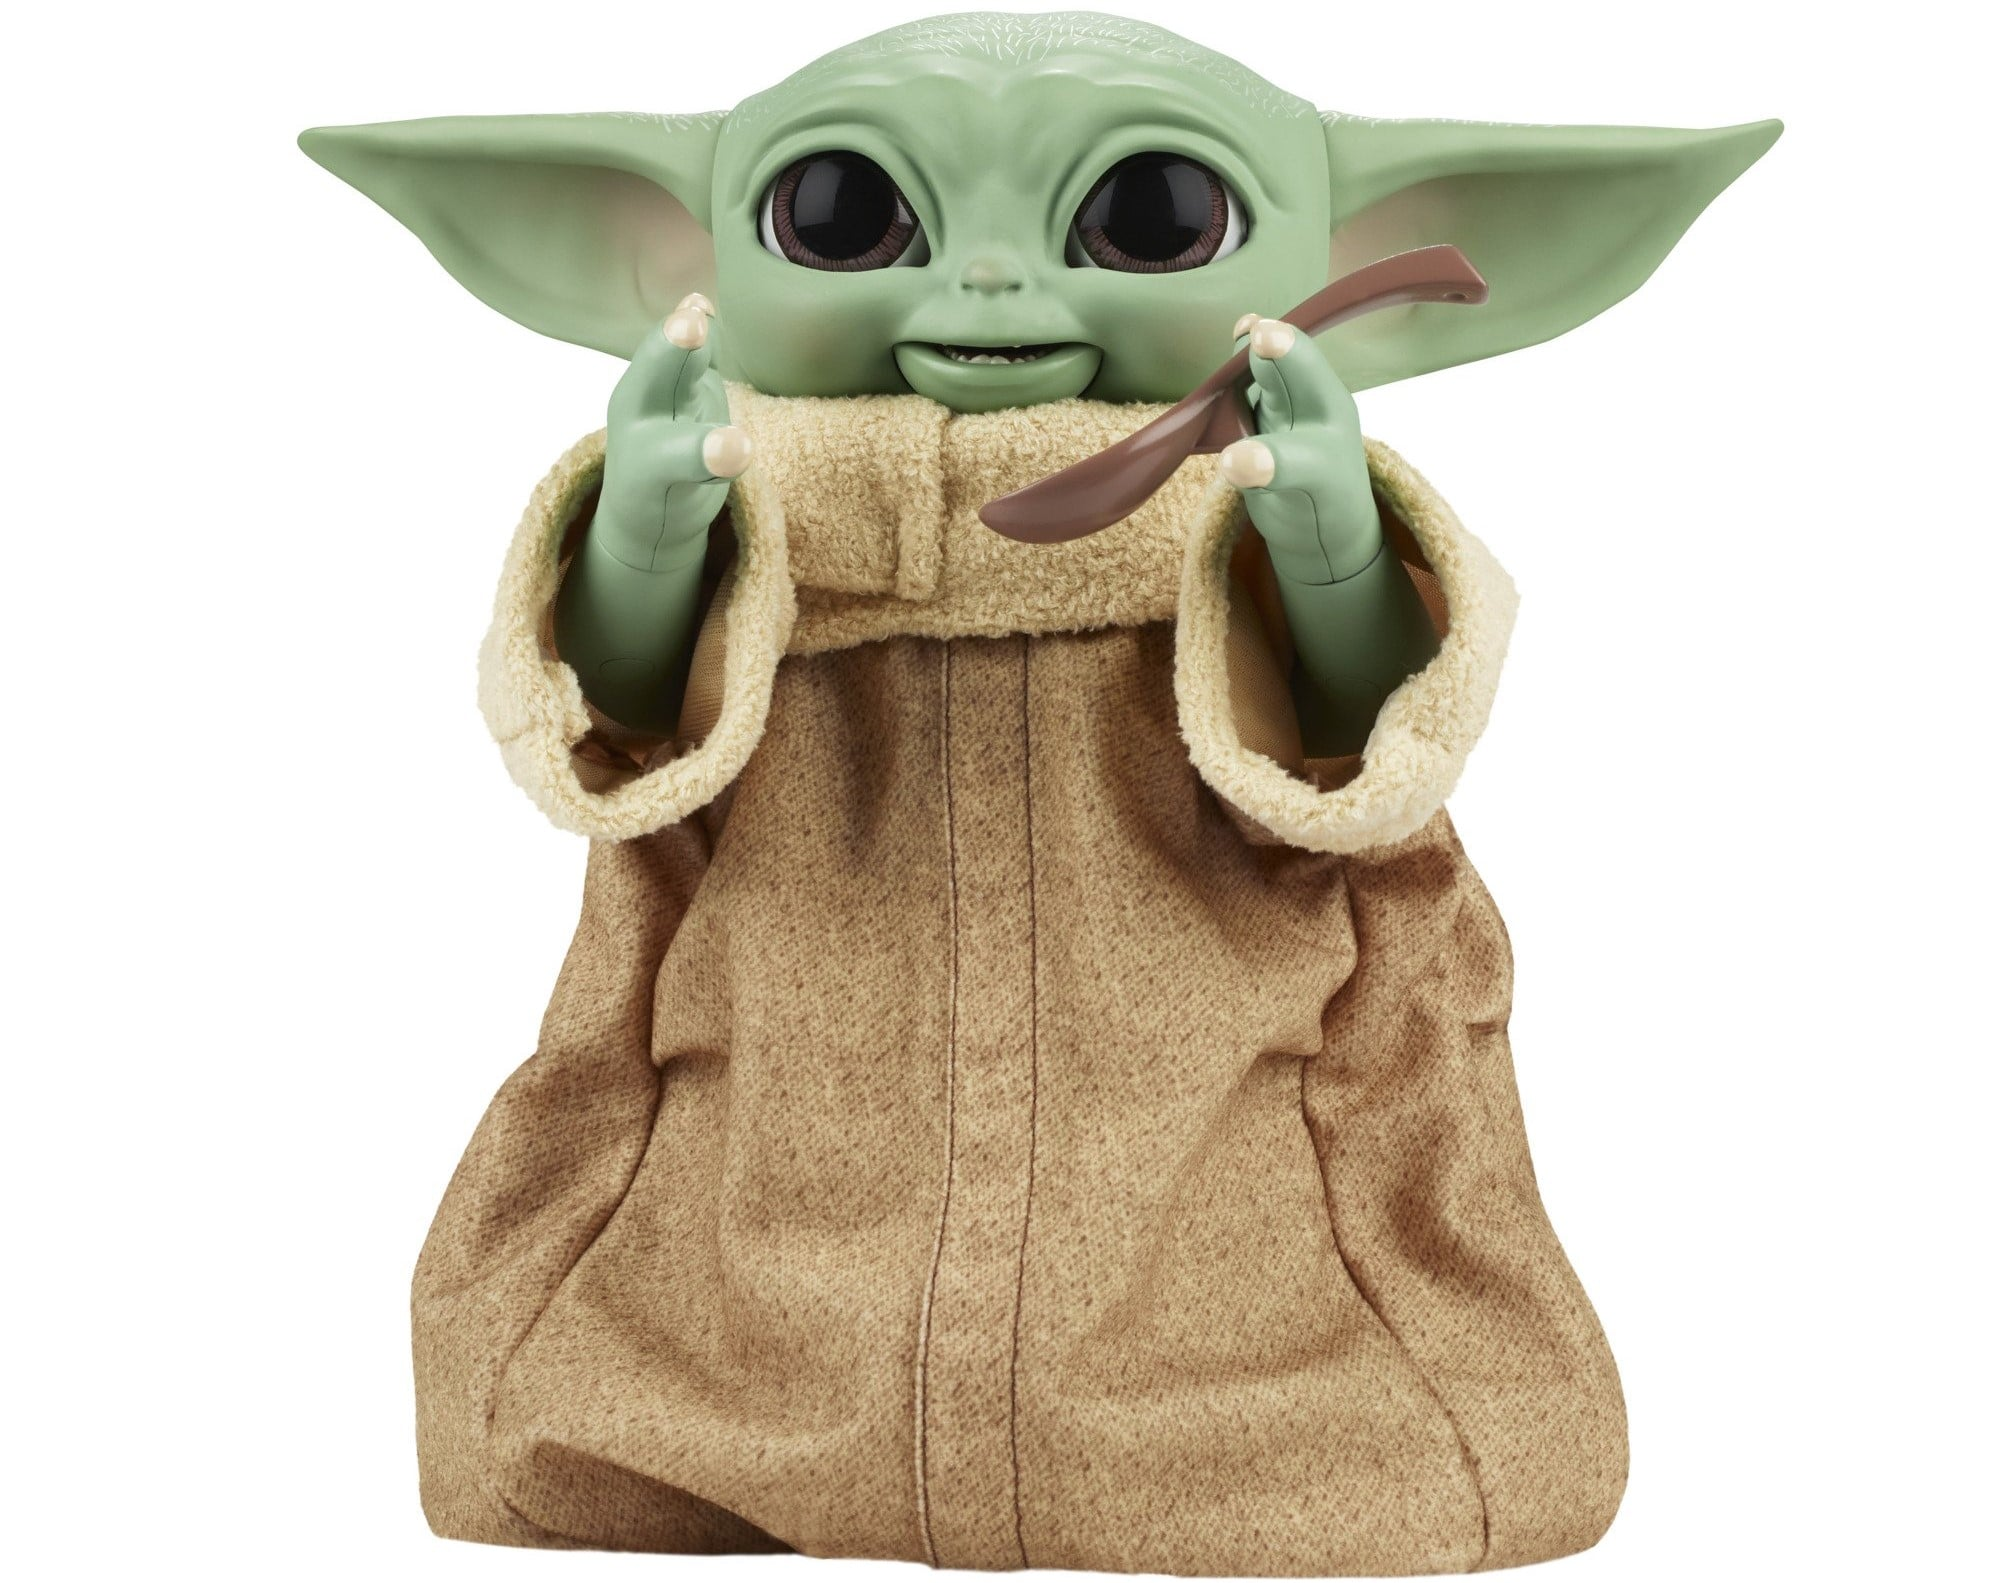 Hasbro's new Baby Yoda animatronic toy is inspired by Grogu's love for snacking 19